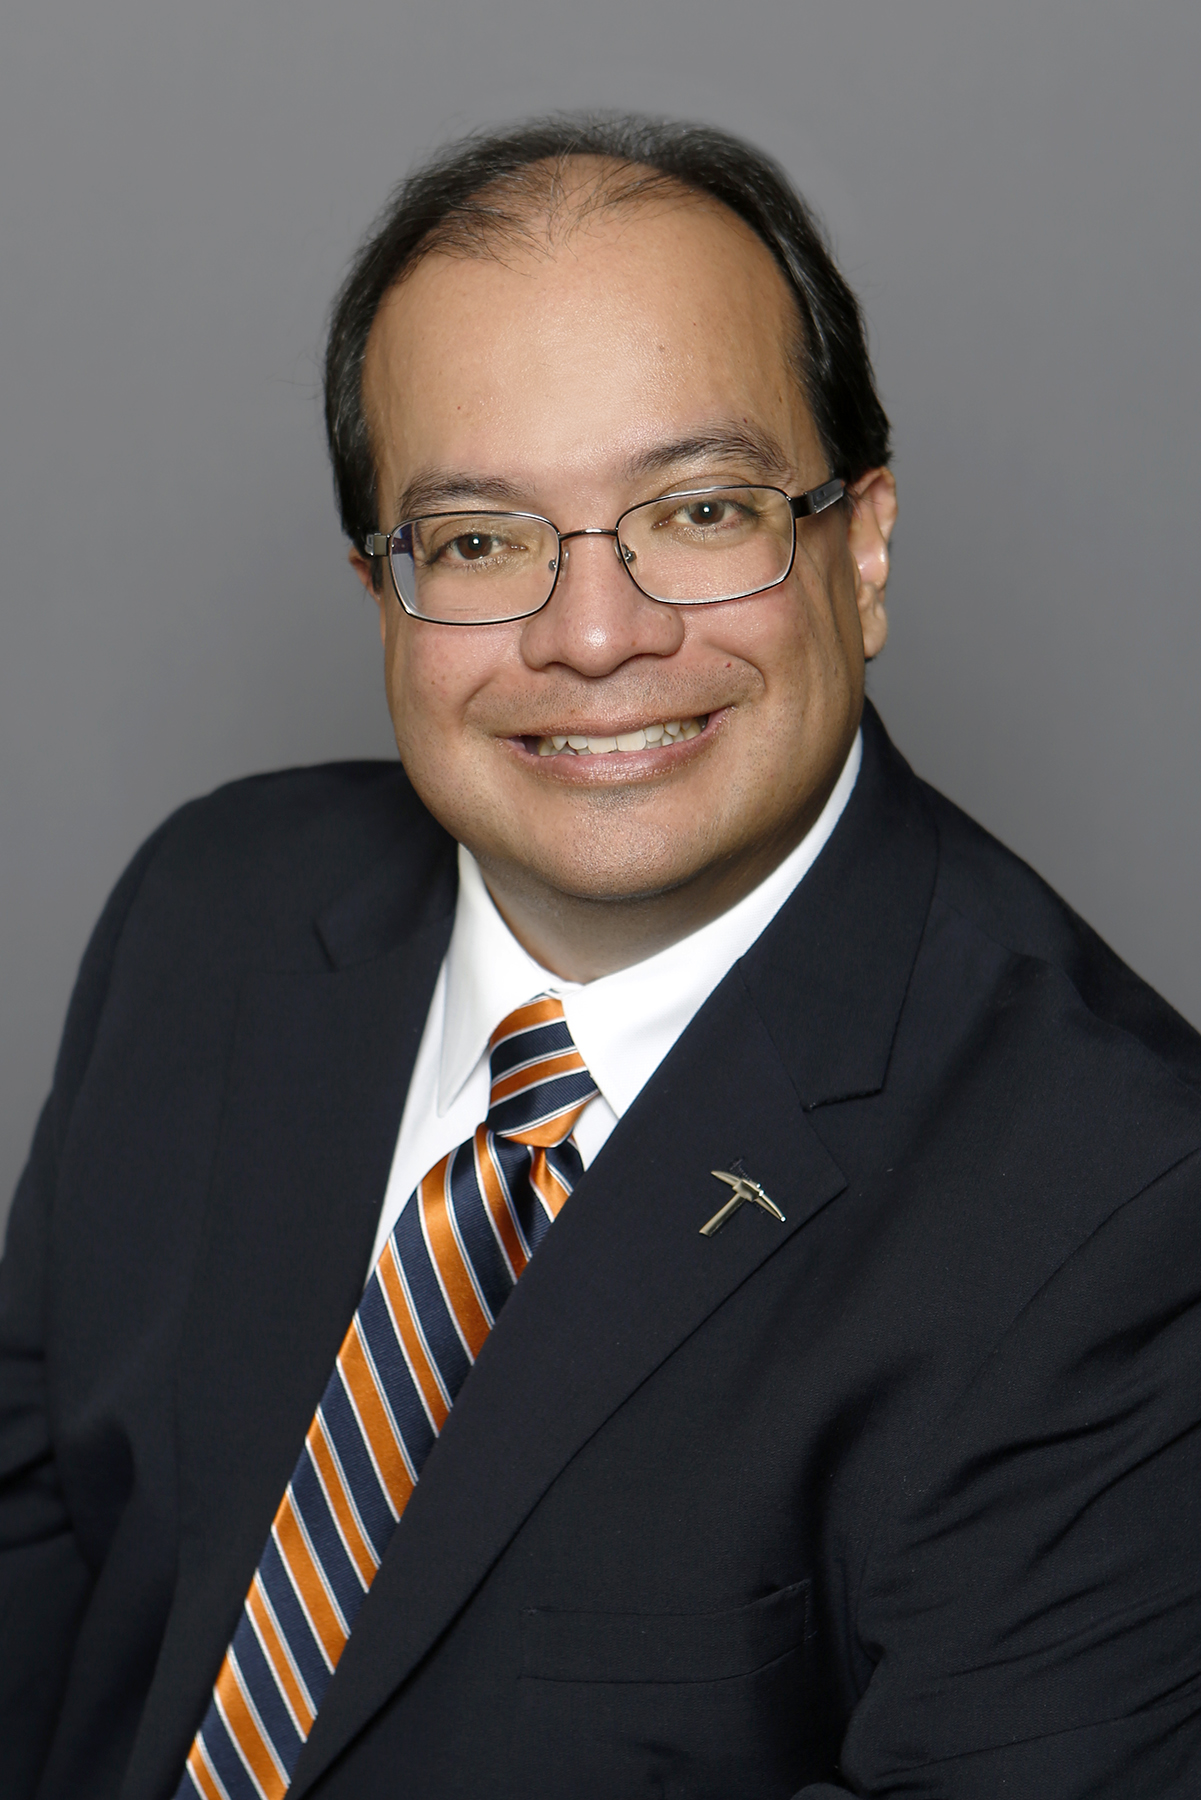 David J. Carrejo